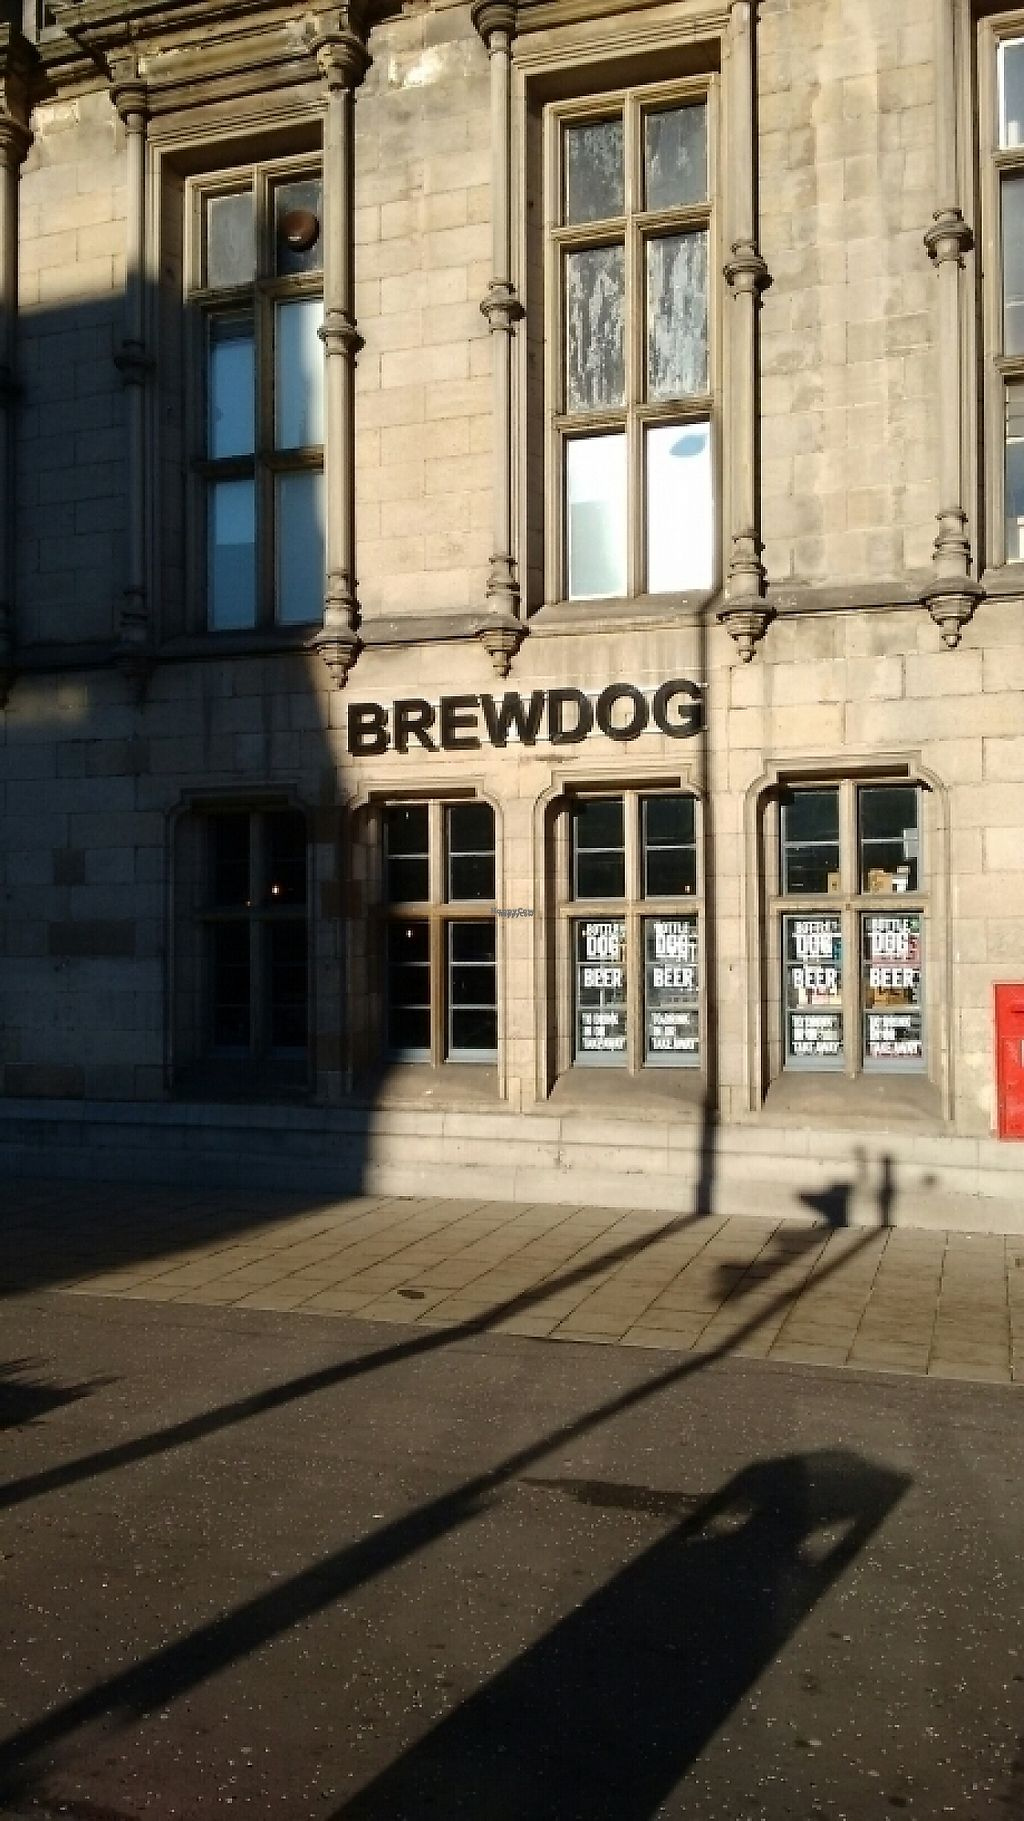 """Photo of Brewdog  by <a href=""""/members/profile/craigmc"""">craigmc</a> <br/>doggy style <br/> November 19, 2016  - <a href='/contact/abuse/image/82193/192104'>Report</a>"""